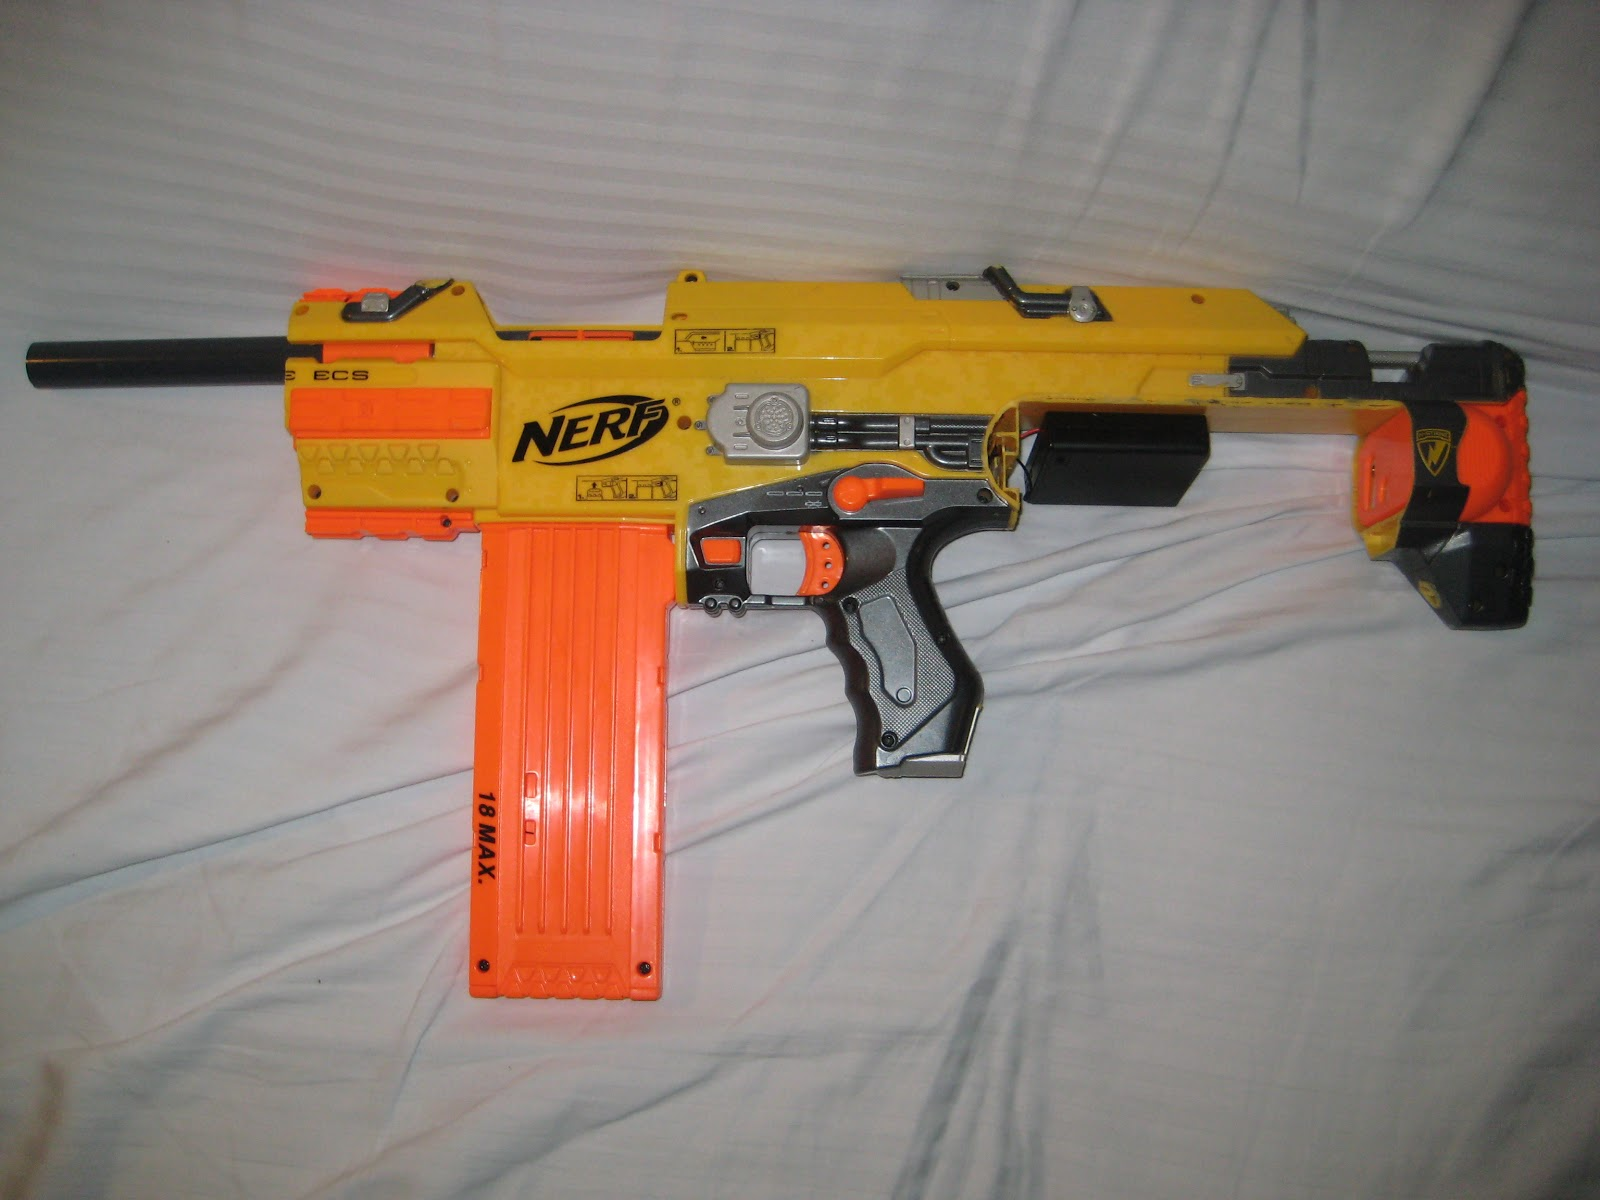 T Da B S Life Of Nerf Minimized And Brass Breeched